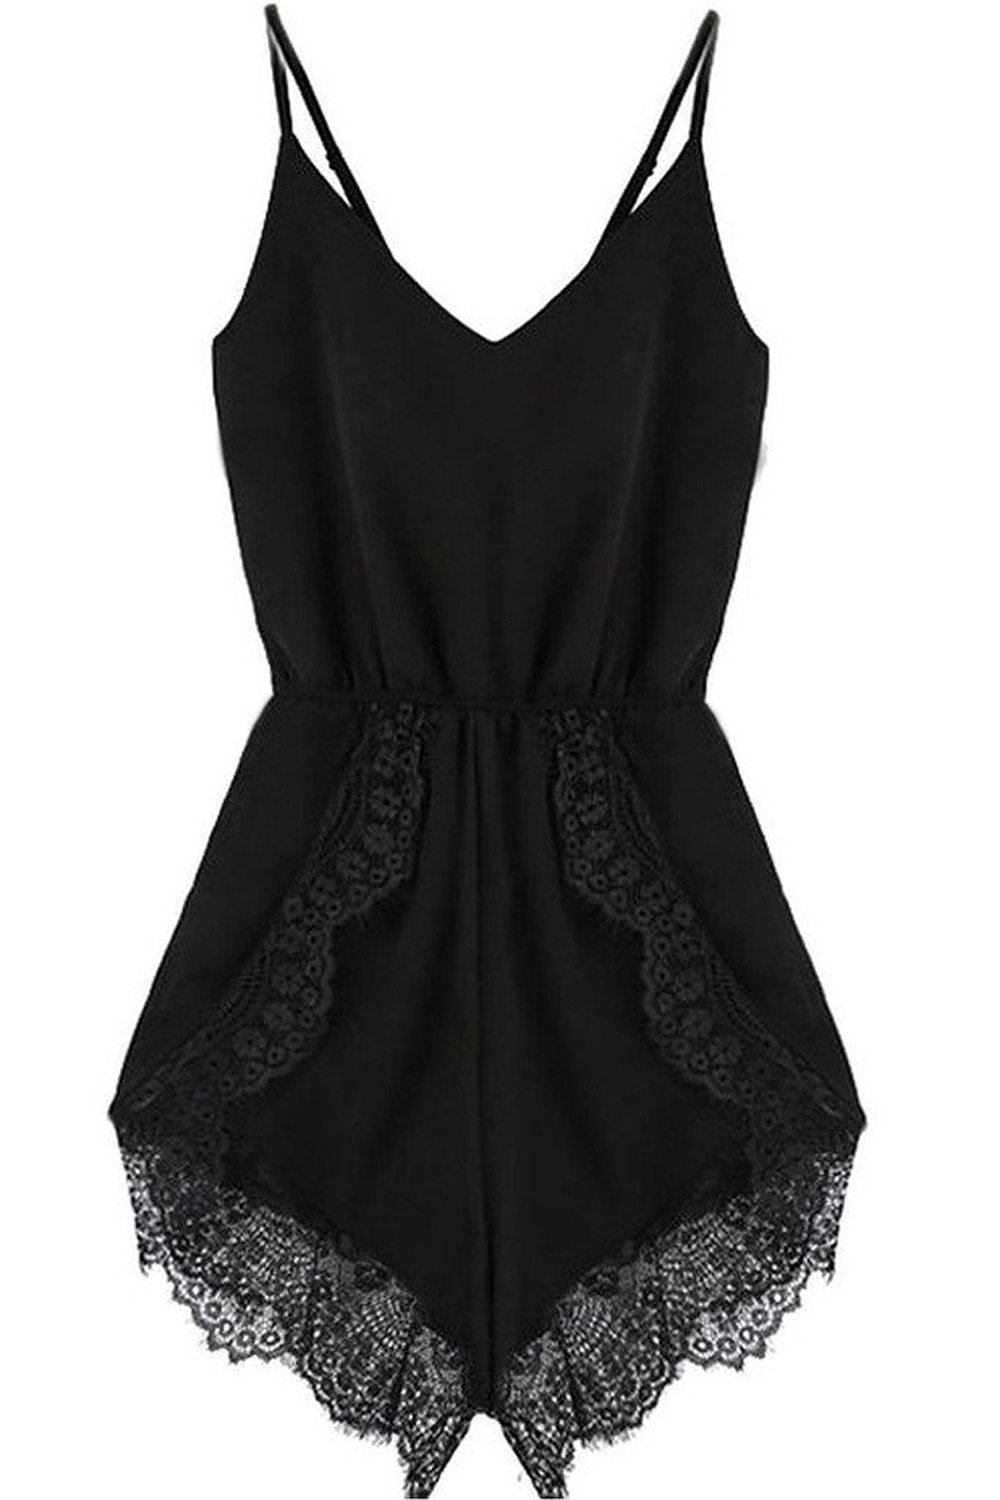 FACE N FACE Women's Lace Chiffon Sleeveless Jumpsuit Rompers Large Black by FACE N FACE (Image #2)